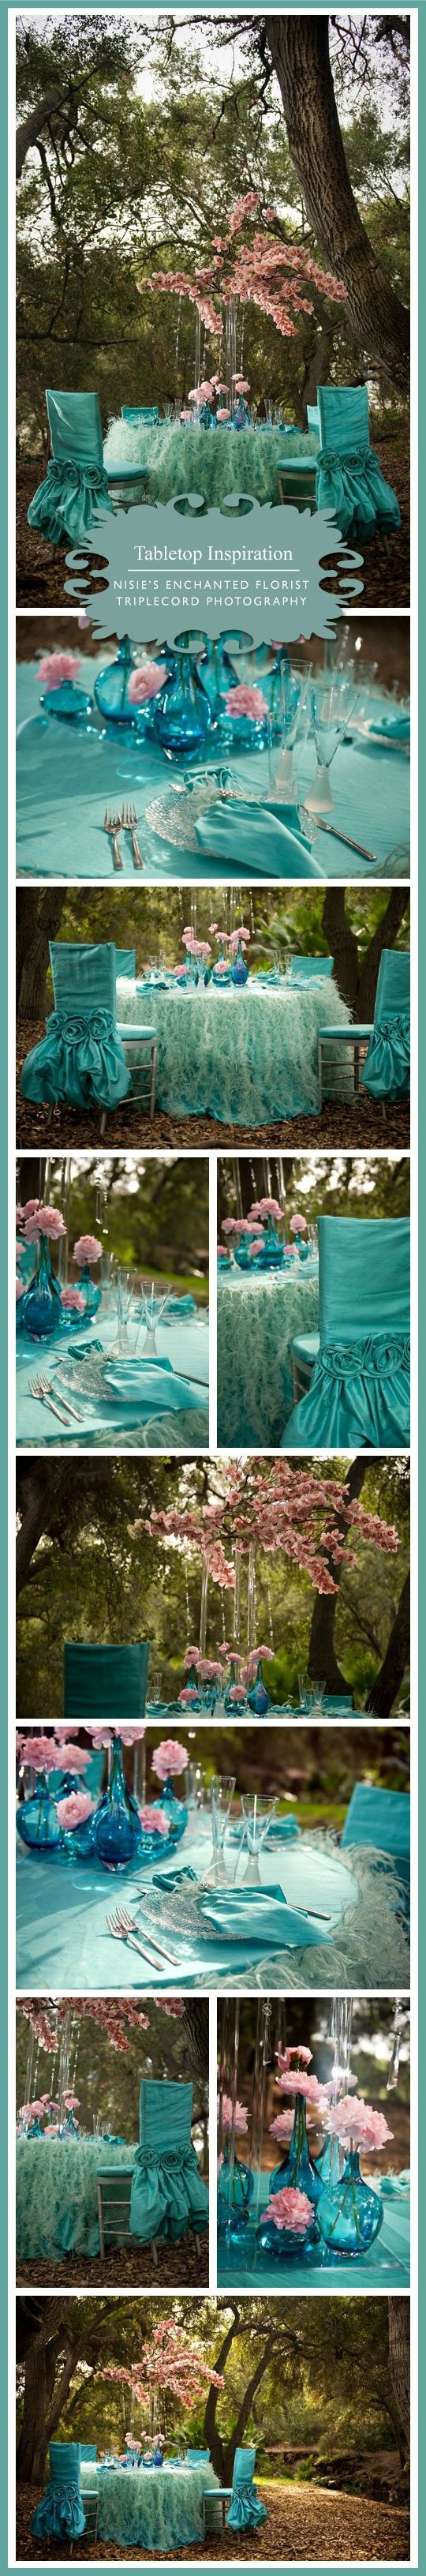 Blue Wedding Theme! Way out of my budget but LOVE the concept!